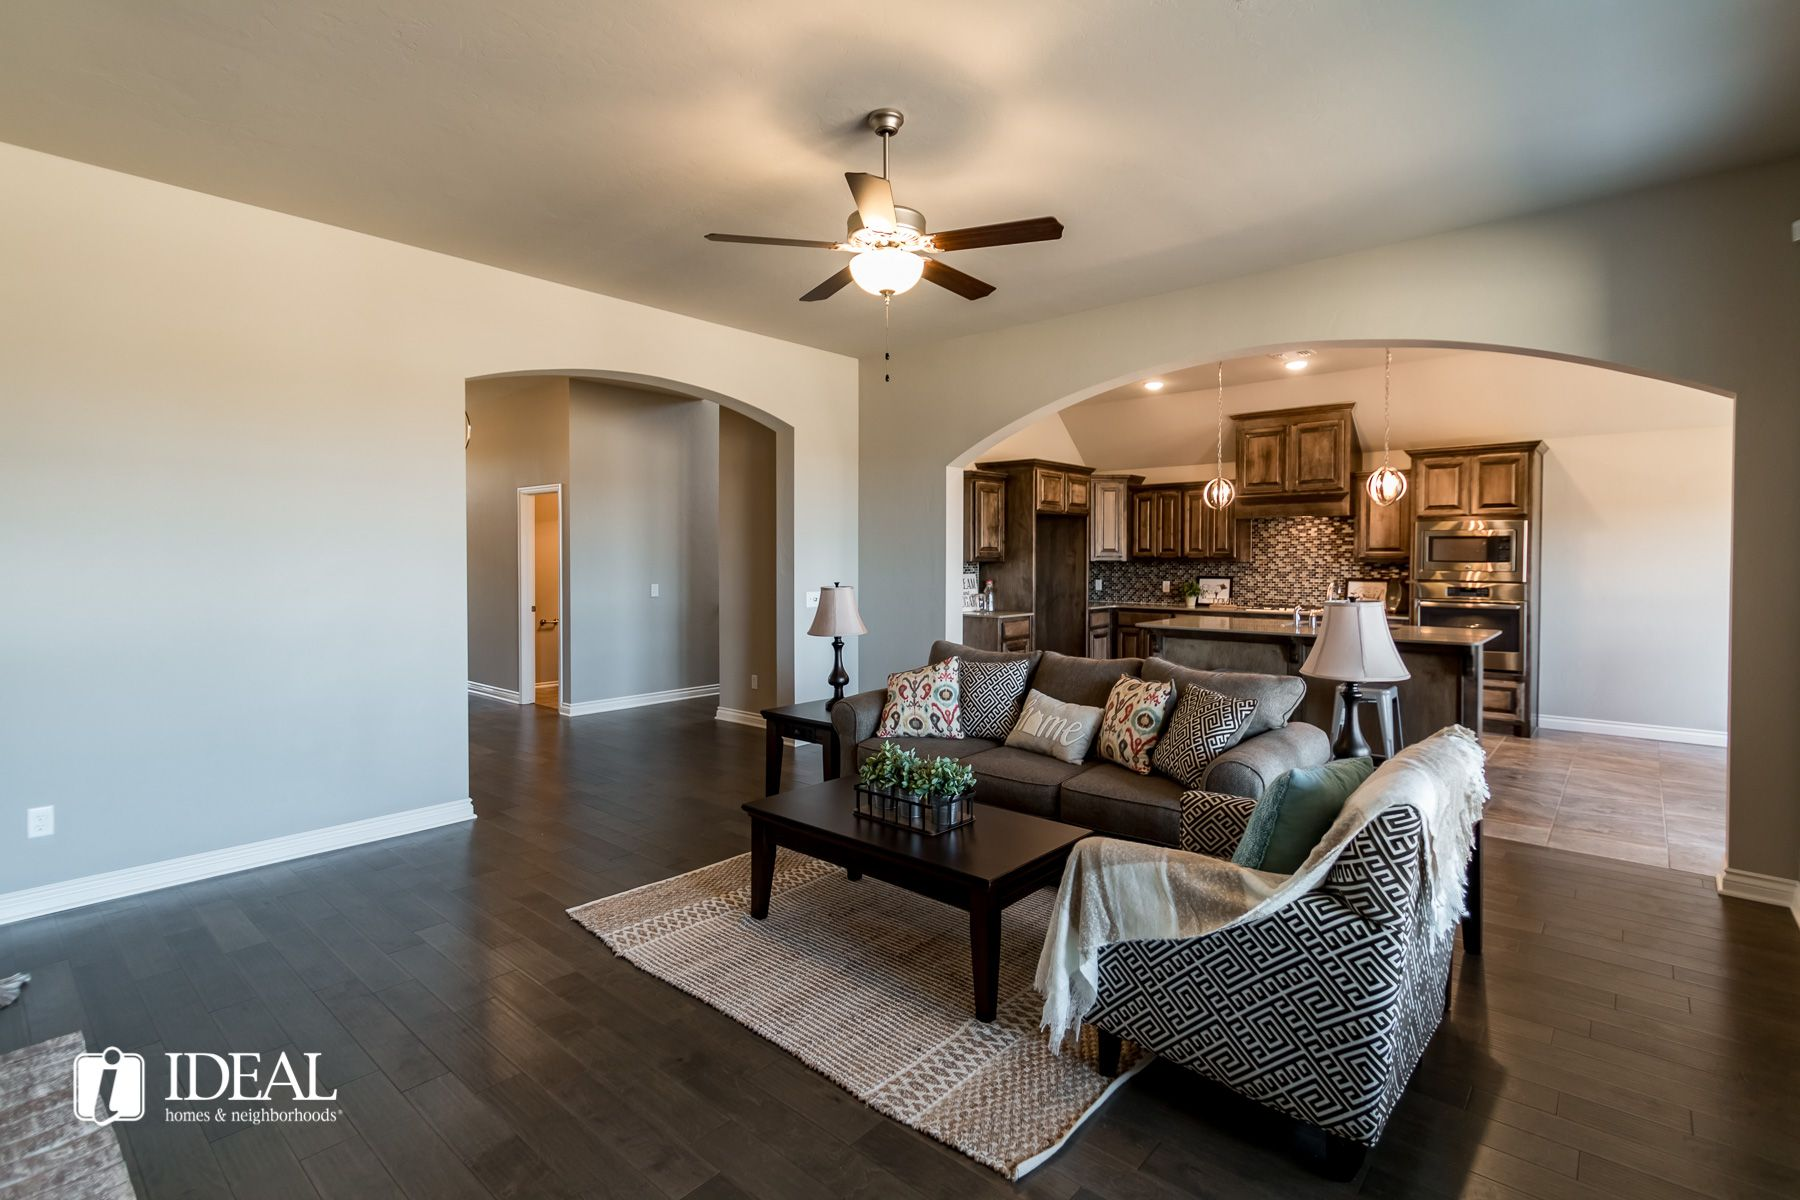 Living Area featured in the Thatcher By Ideal Homes in Oklahoma City, OK